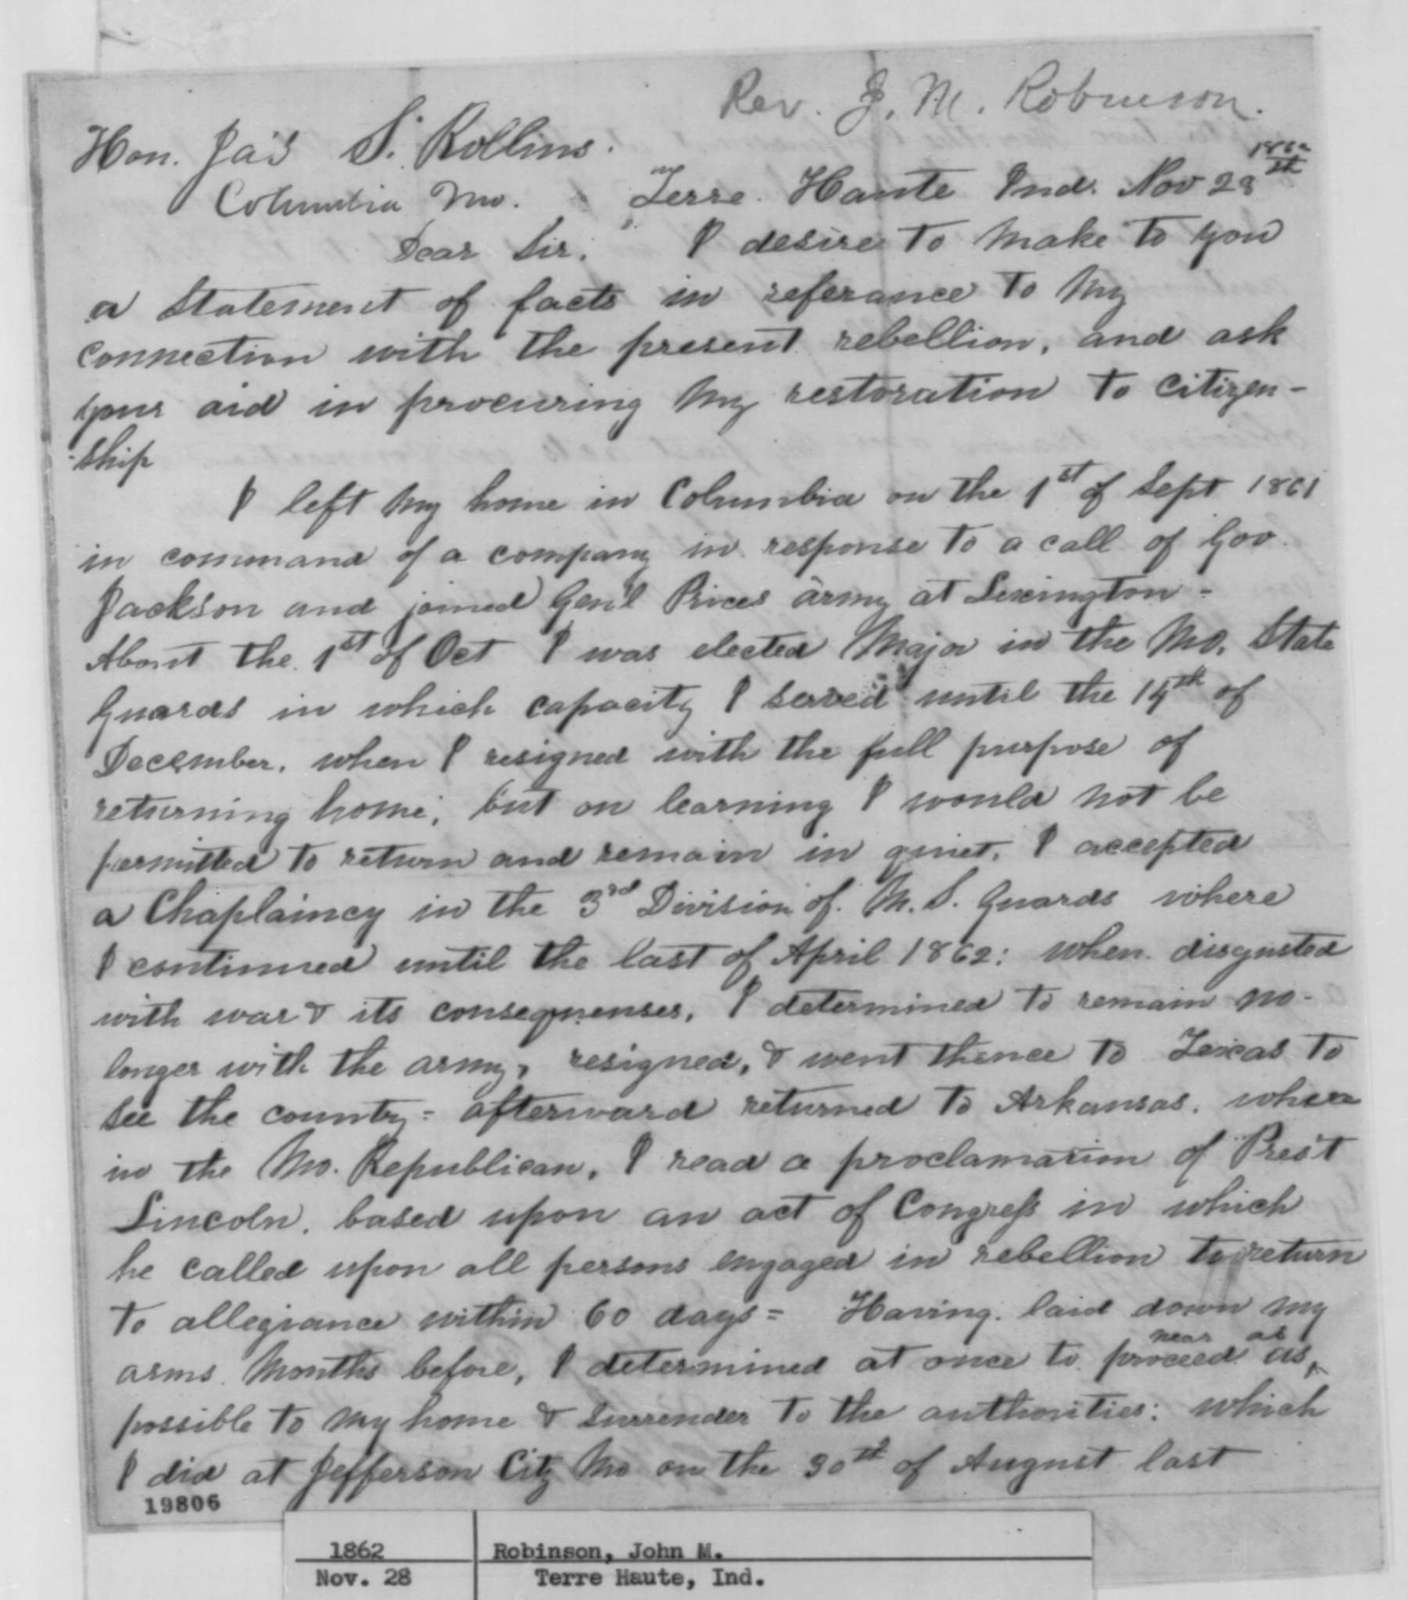 John M. Robinson to James S. Rollins, Friday, November 28, 1862  (Seeks return of his citizenship; endorsed by Rollins and attested to by several others)